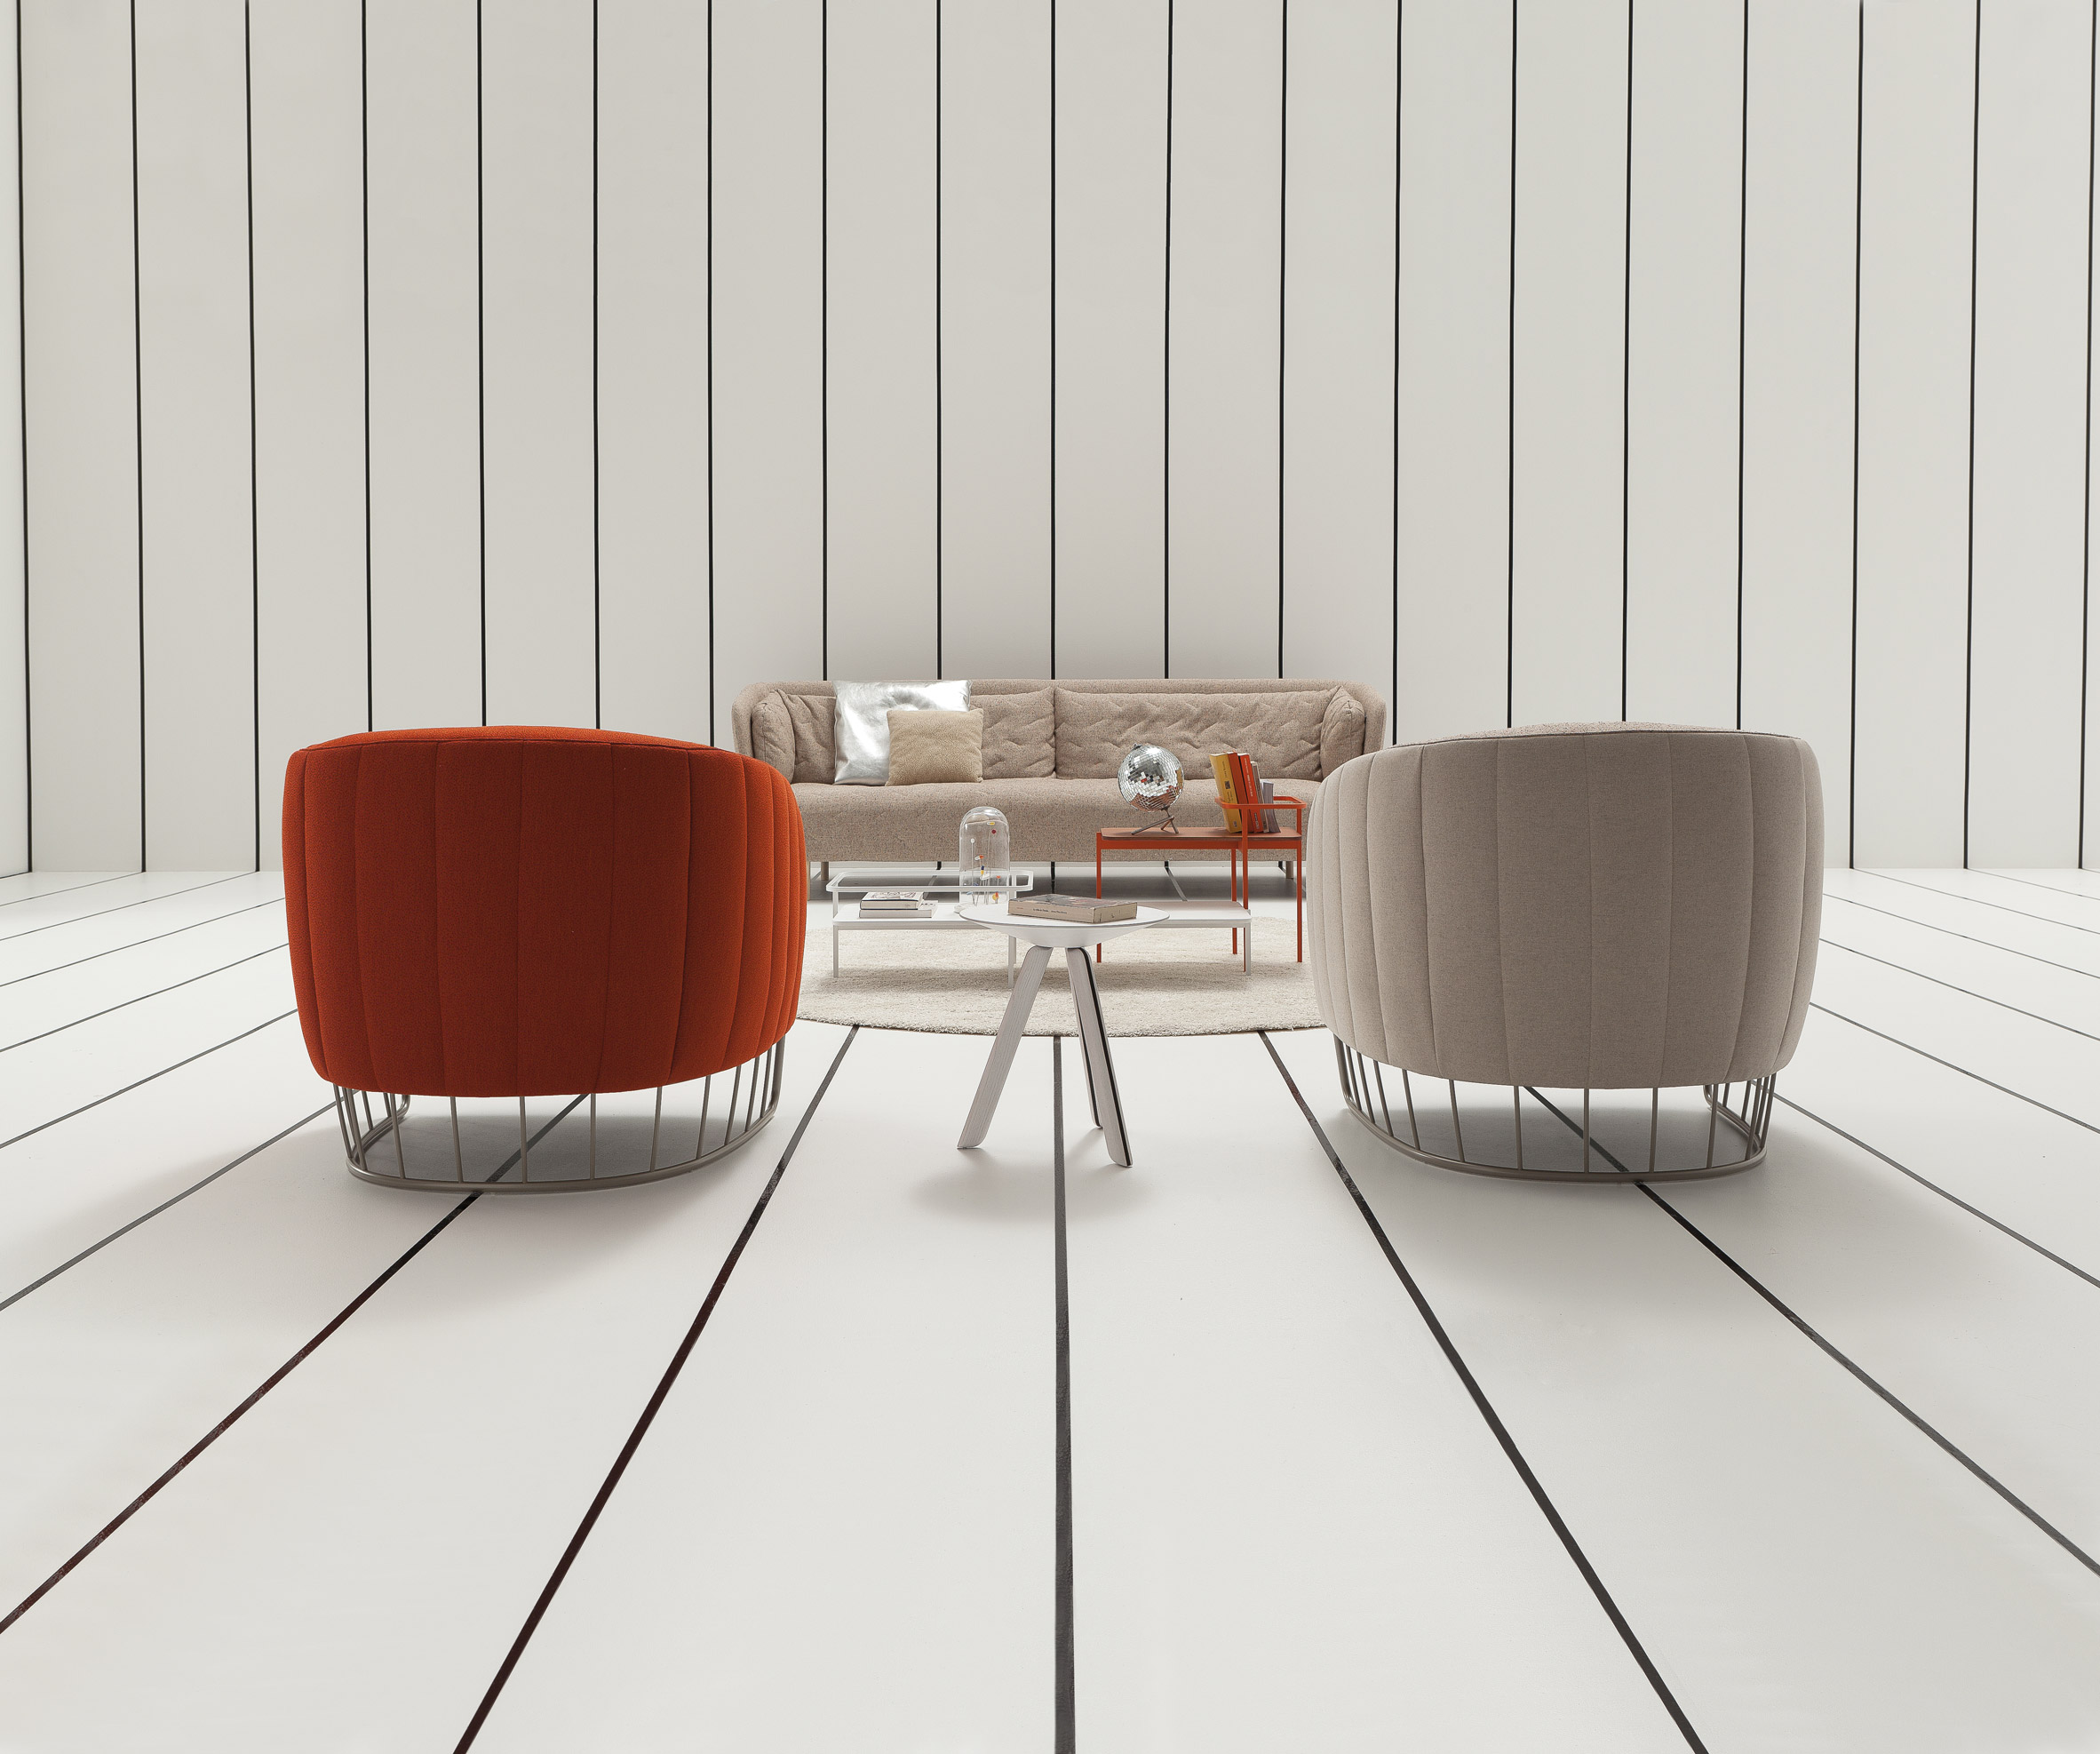 tonella-chair-collection-sancal-futura_dezeen_2364_col_3